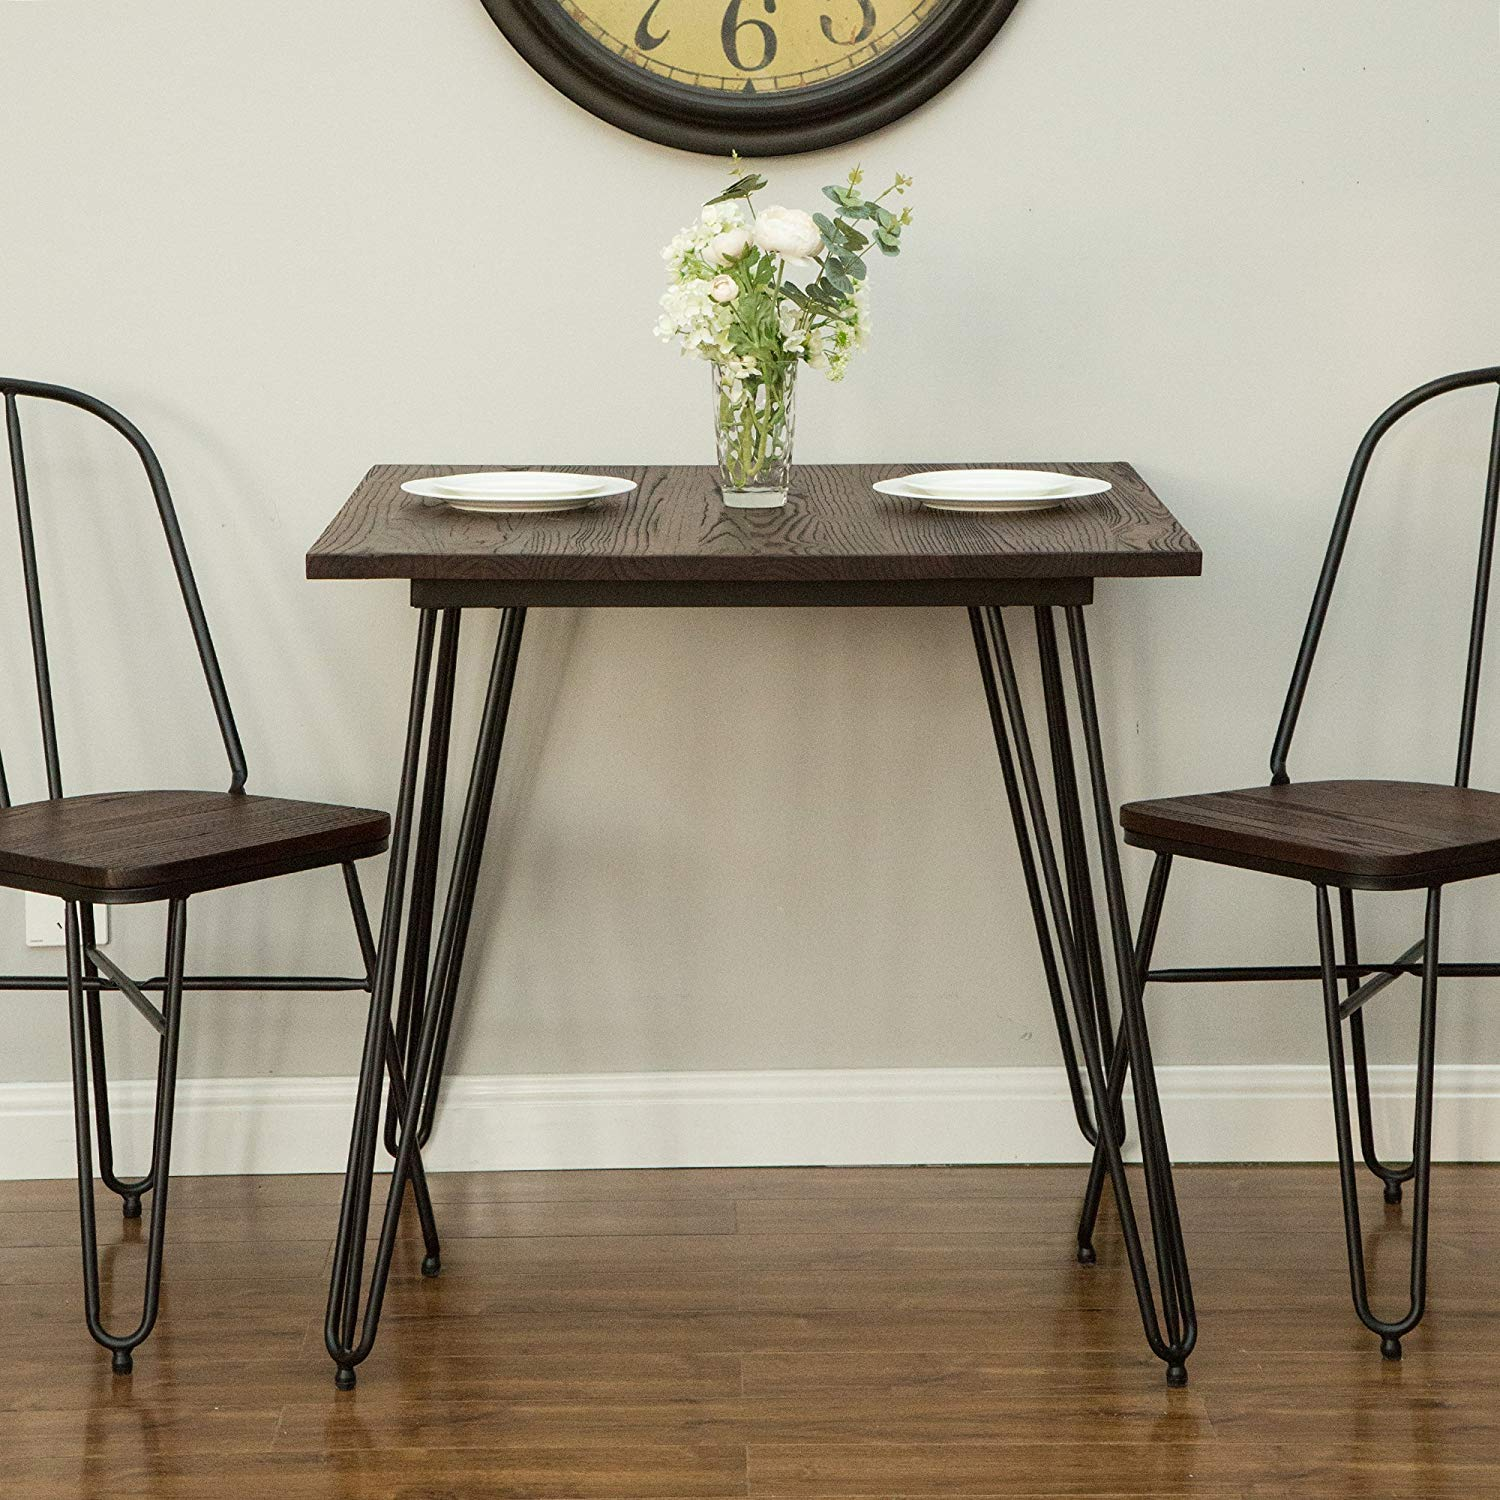 Glitzhome Metal Dining Table with Elm Wood Top in Industrial Style